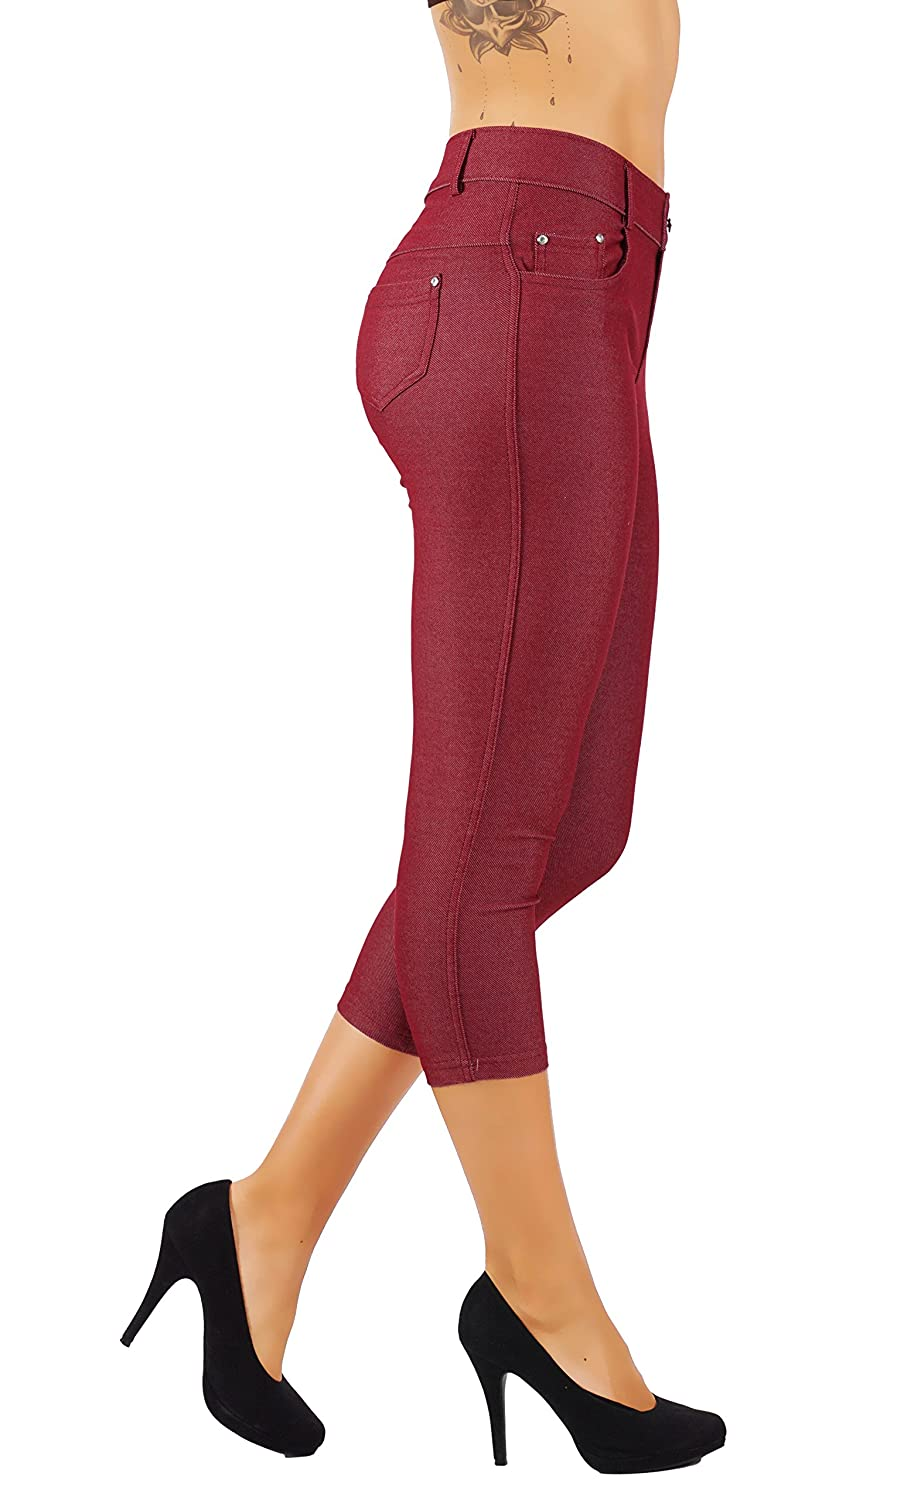 5s01cpbug 5StarsLine Women's Jean Look Jeggings Tights Slim Fit Pull Up Pants Solid colors Full Length and Capri Casual Leggings S3X